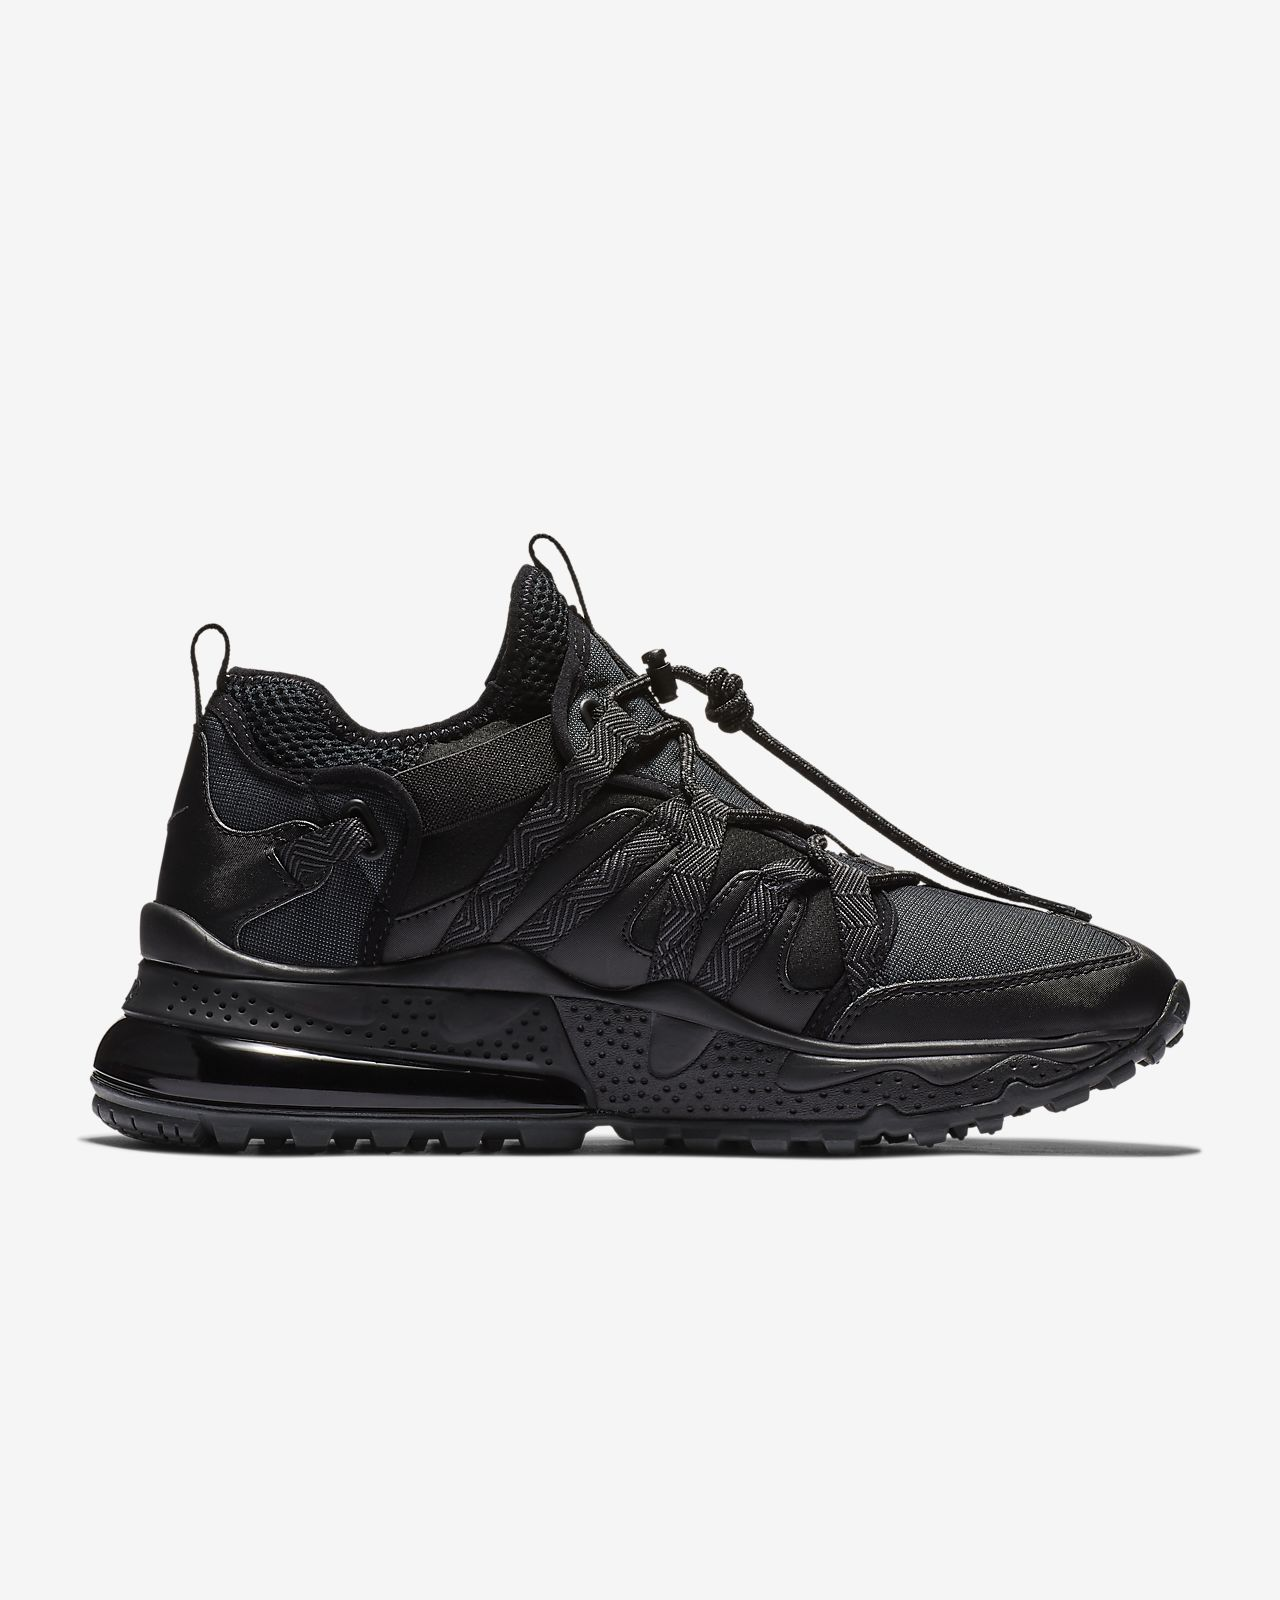 meet c6724 078a1 ... Nike Air Max 270 Bowfin Men s Shoe